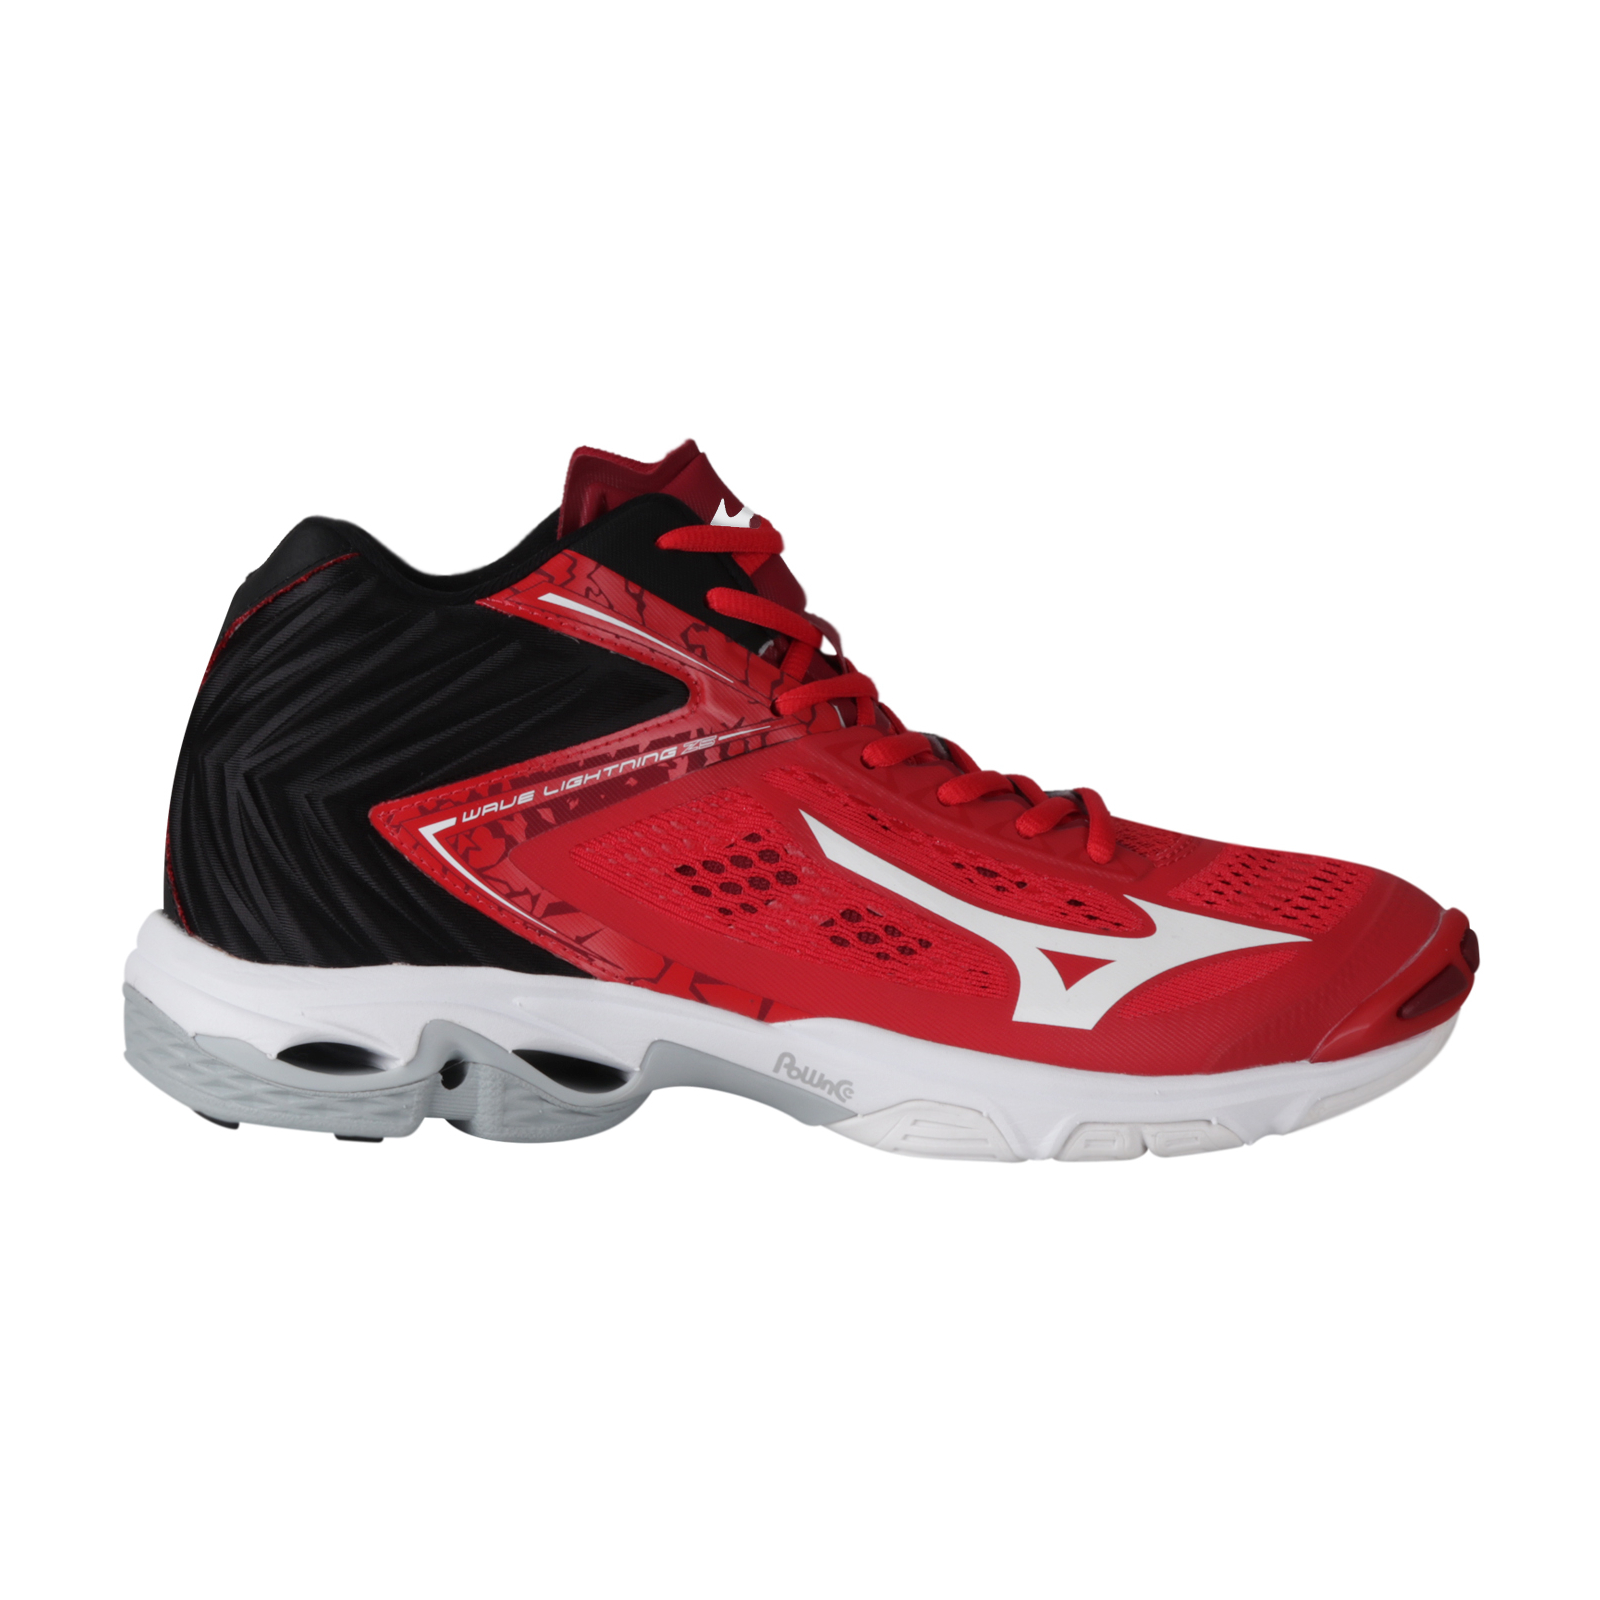 WAVE LIGHTNING Z5 MID - TOMATO/WHITE/BLACK